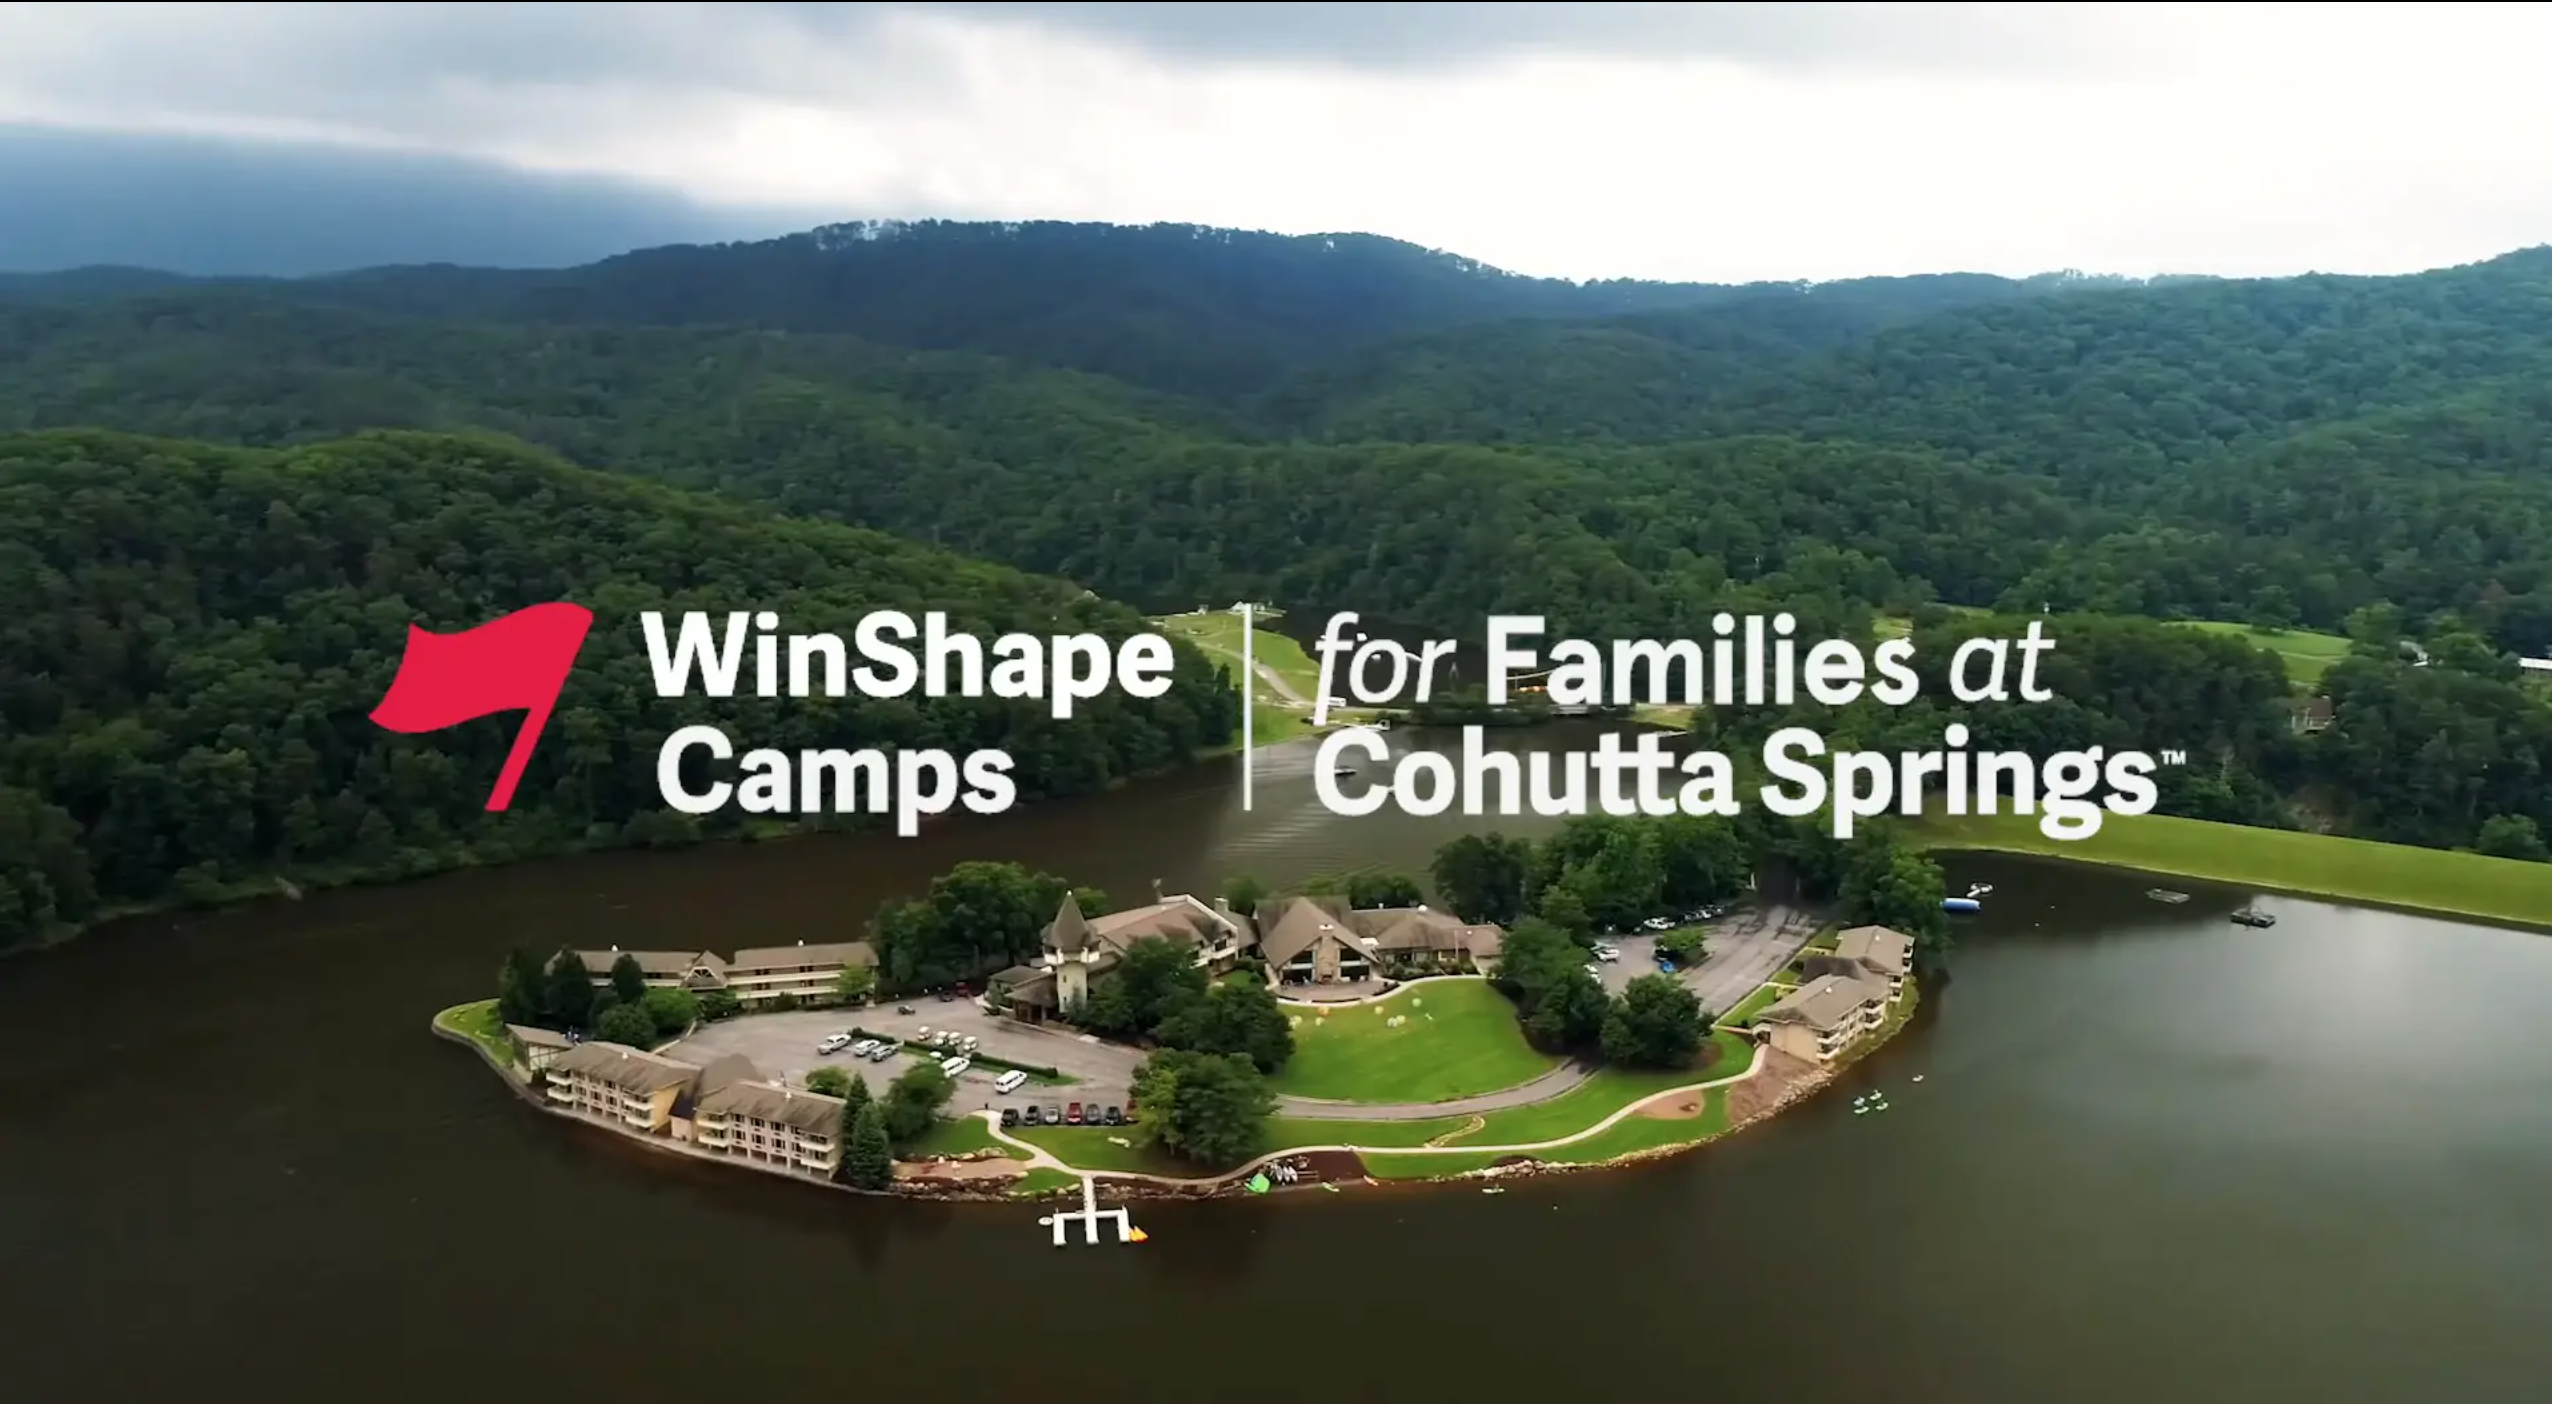 3 Reasons to Join Us at WinShape Camps for Families